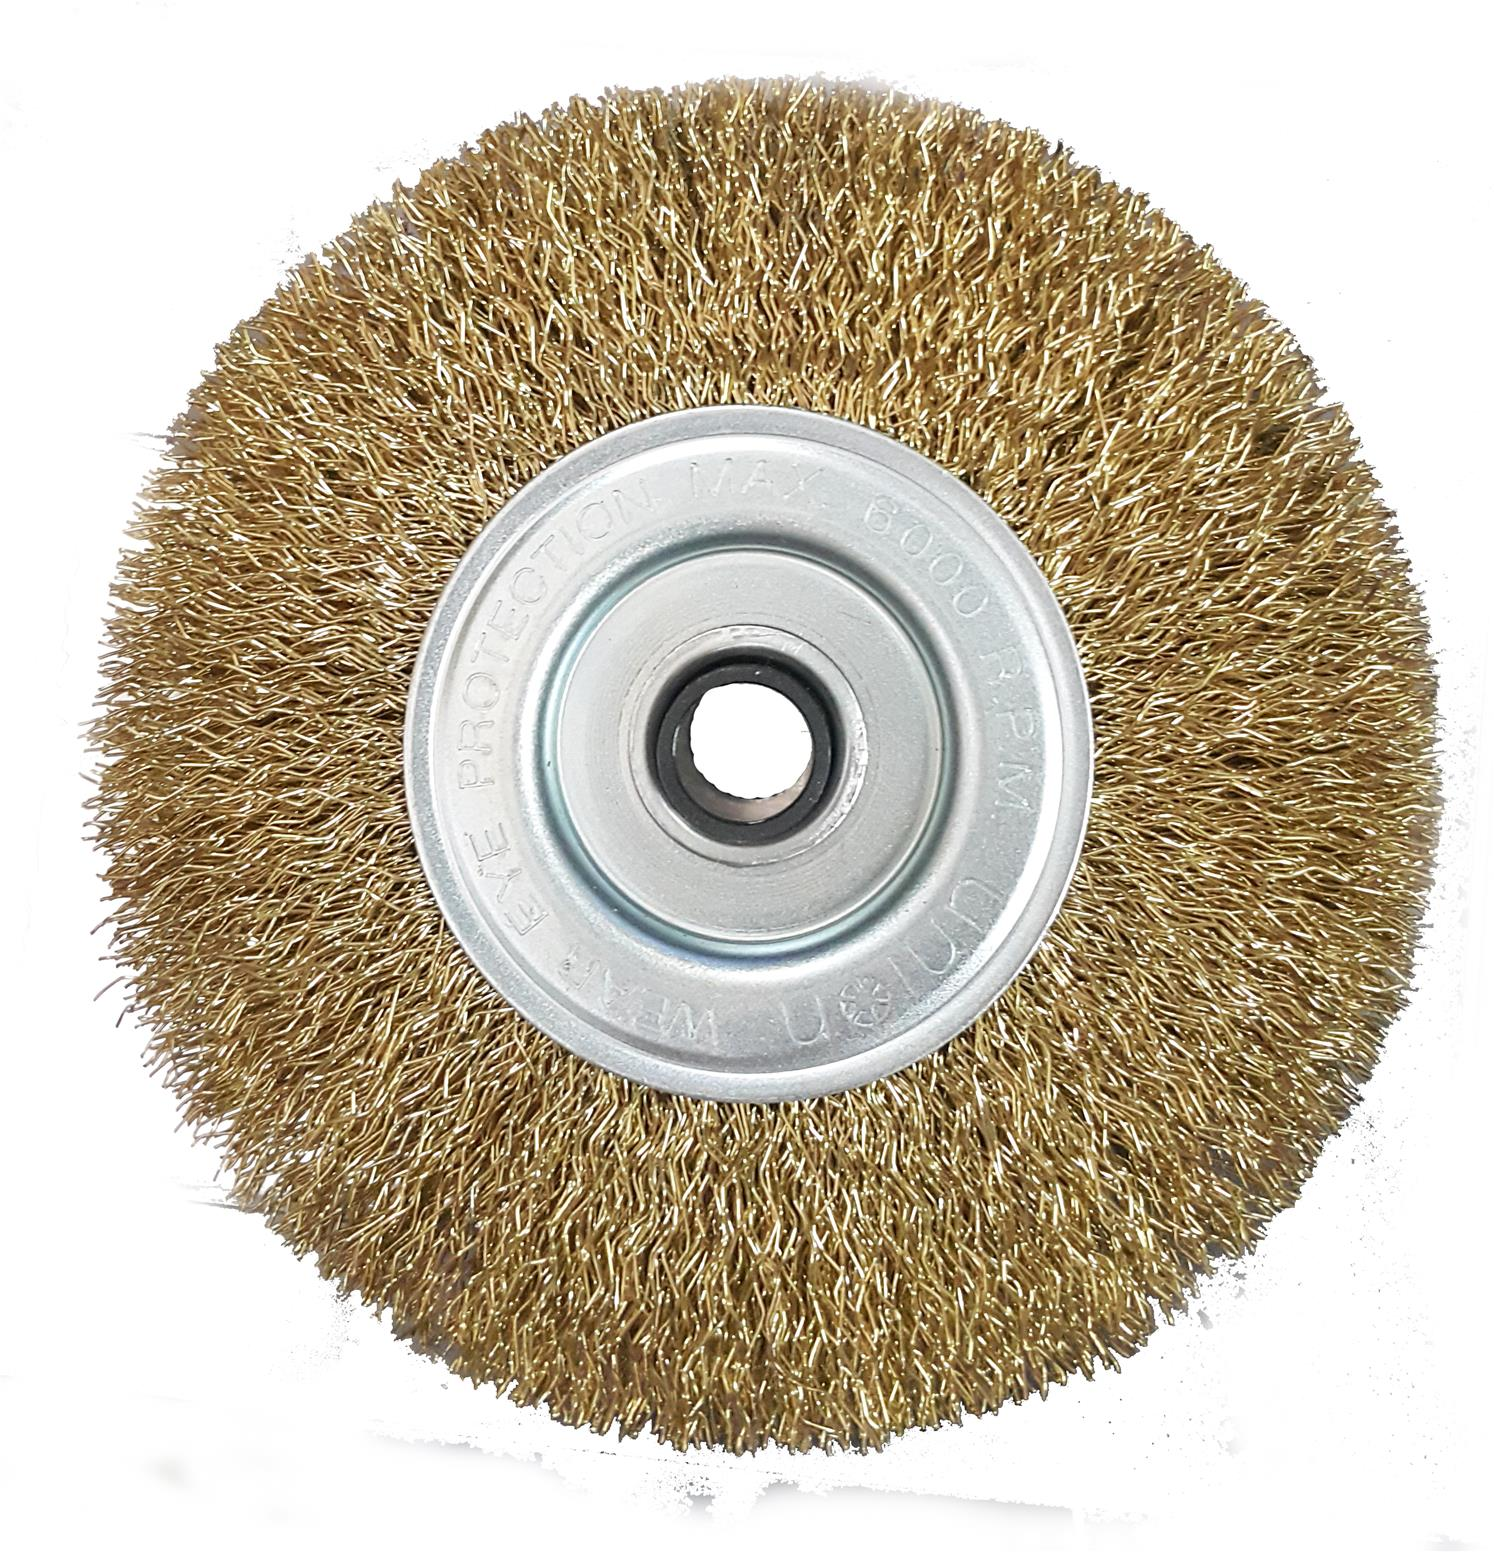 Brass Coated Wire Wheel Brush 4 Inch